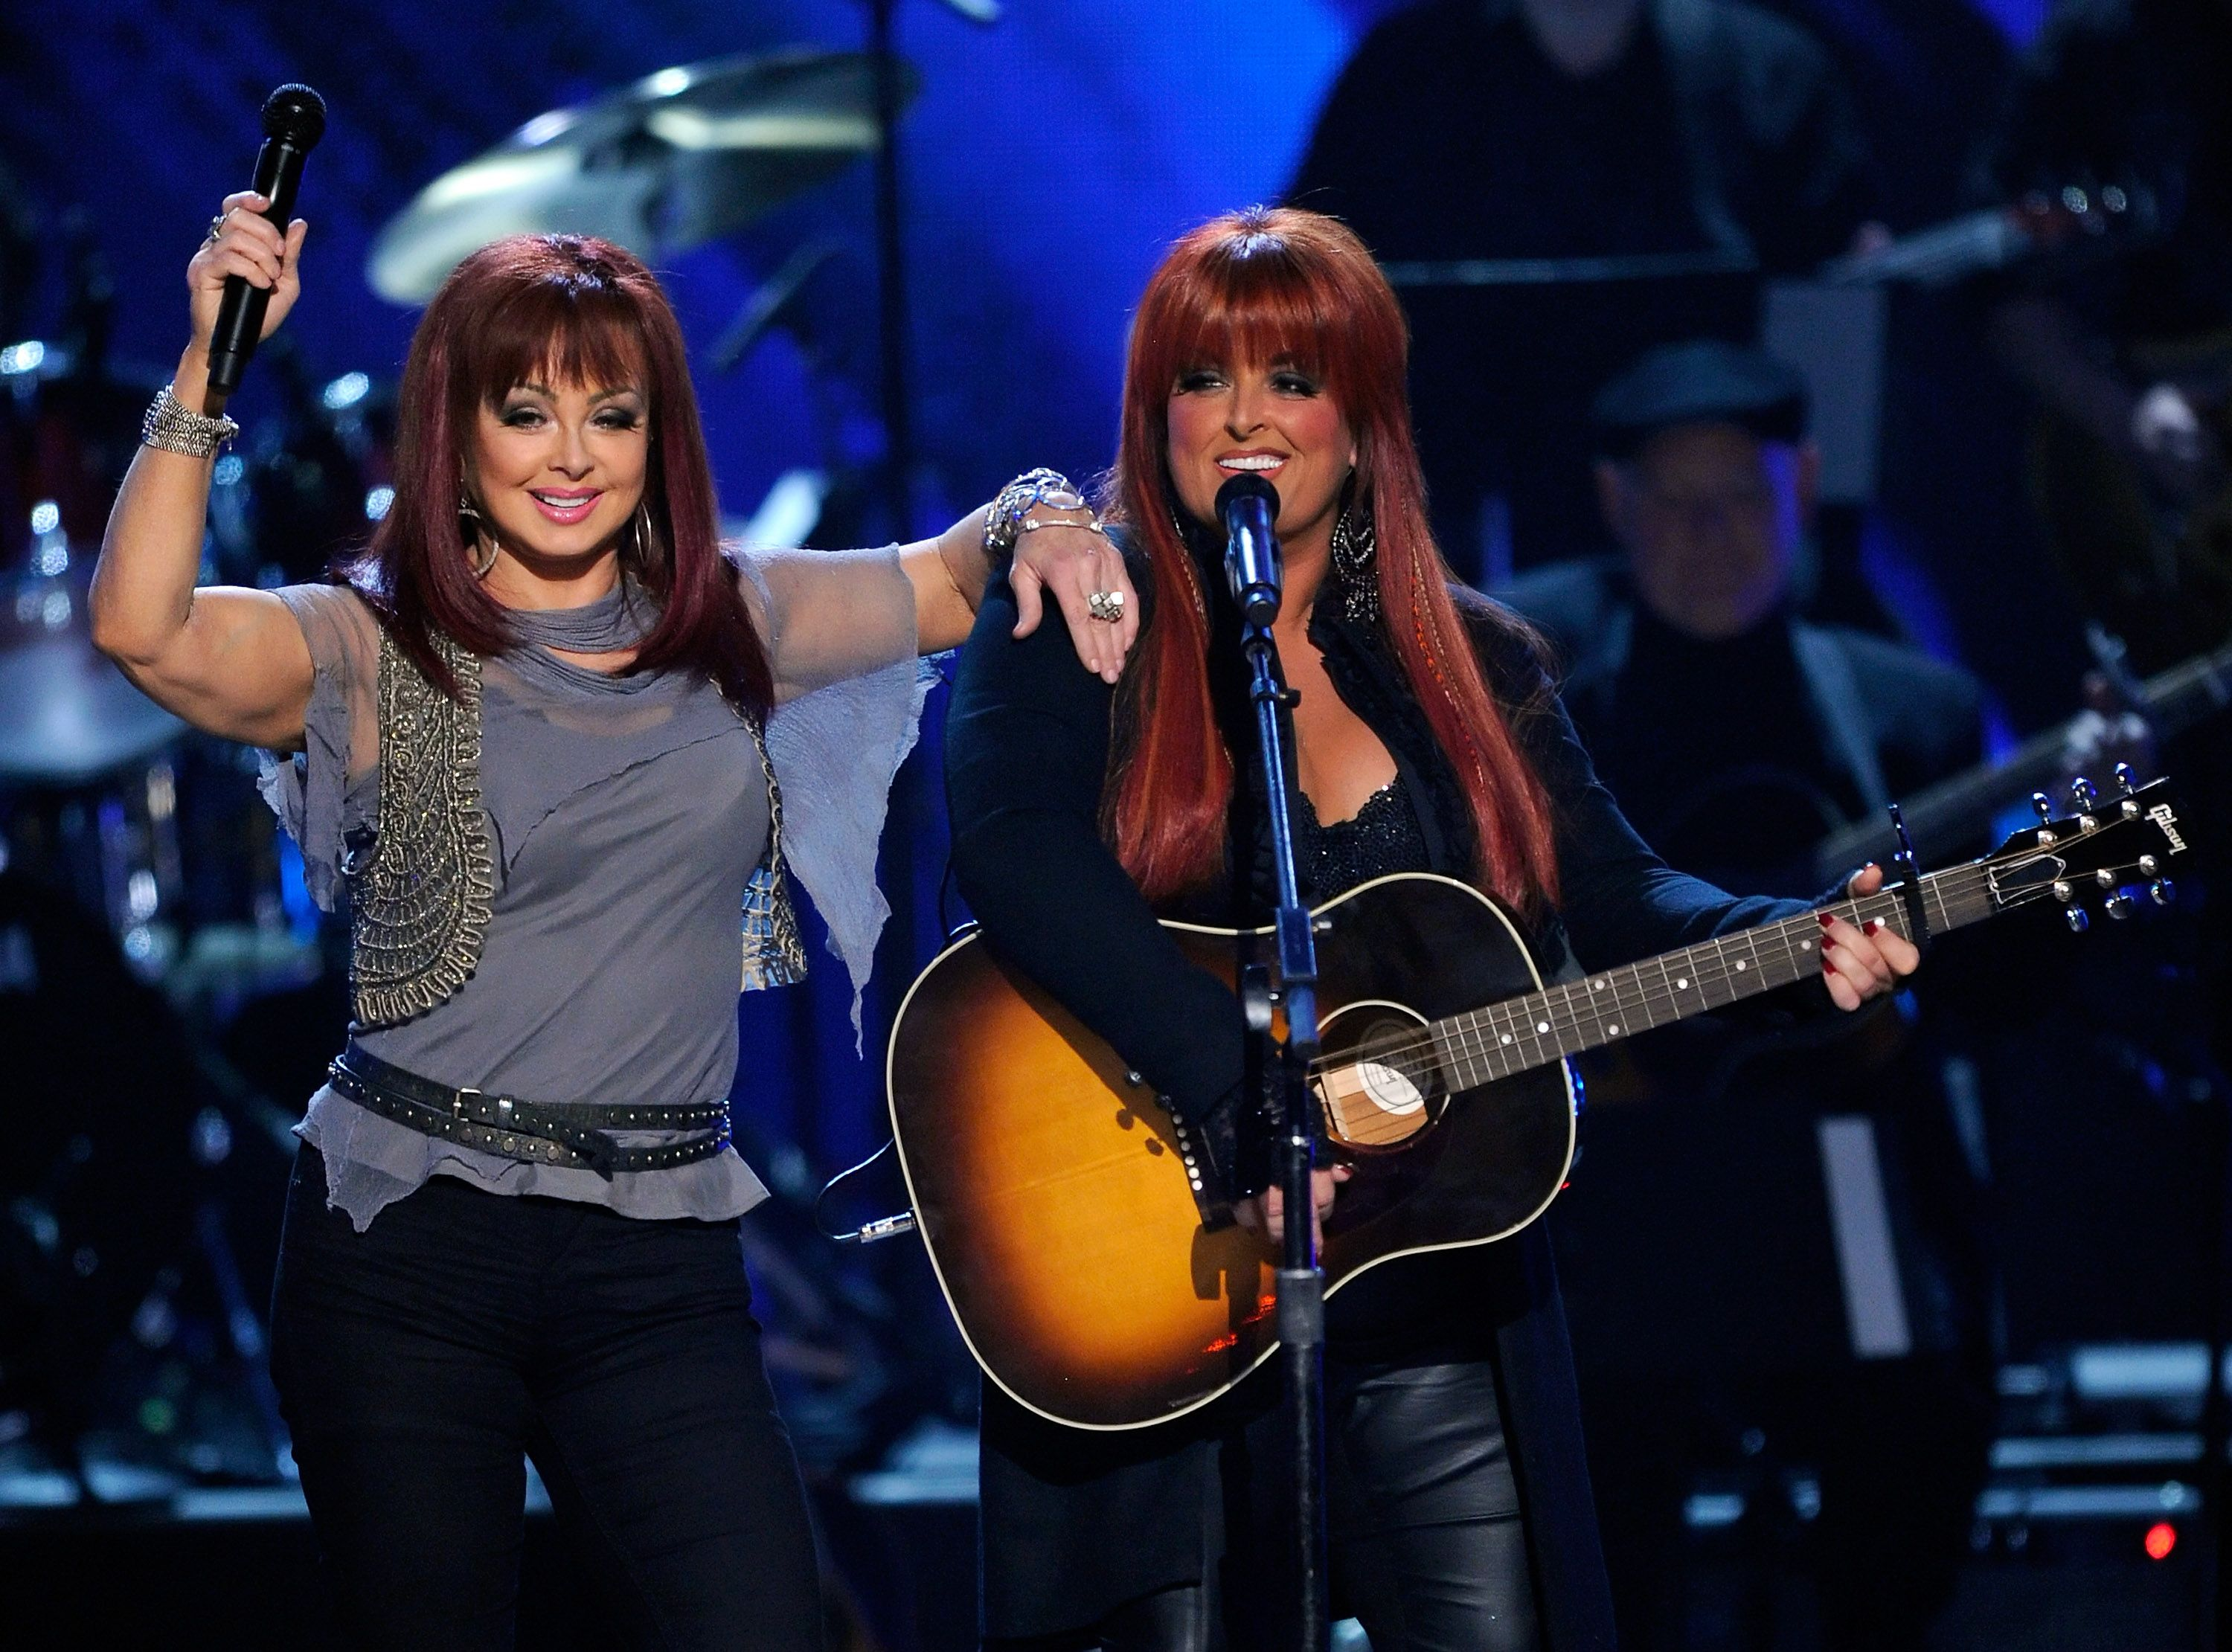 Naomi Judd and Wynonna Judd during ACM Presents: Girls' Night Out: Superstar Women of Country concert held at the MGM Grand Garden Arena on April 4, 2011 in Las Vegas, Nevada. | Source: Getty Images